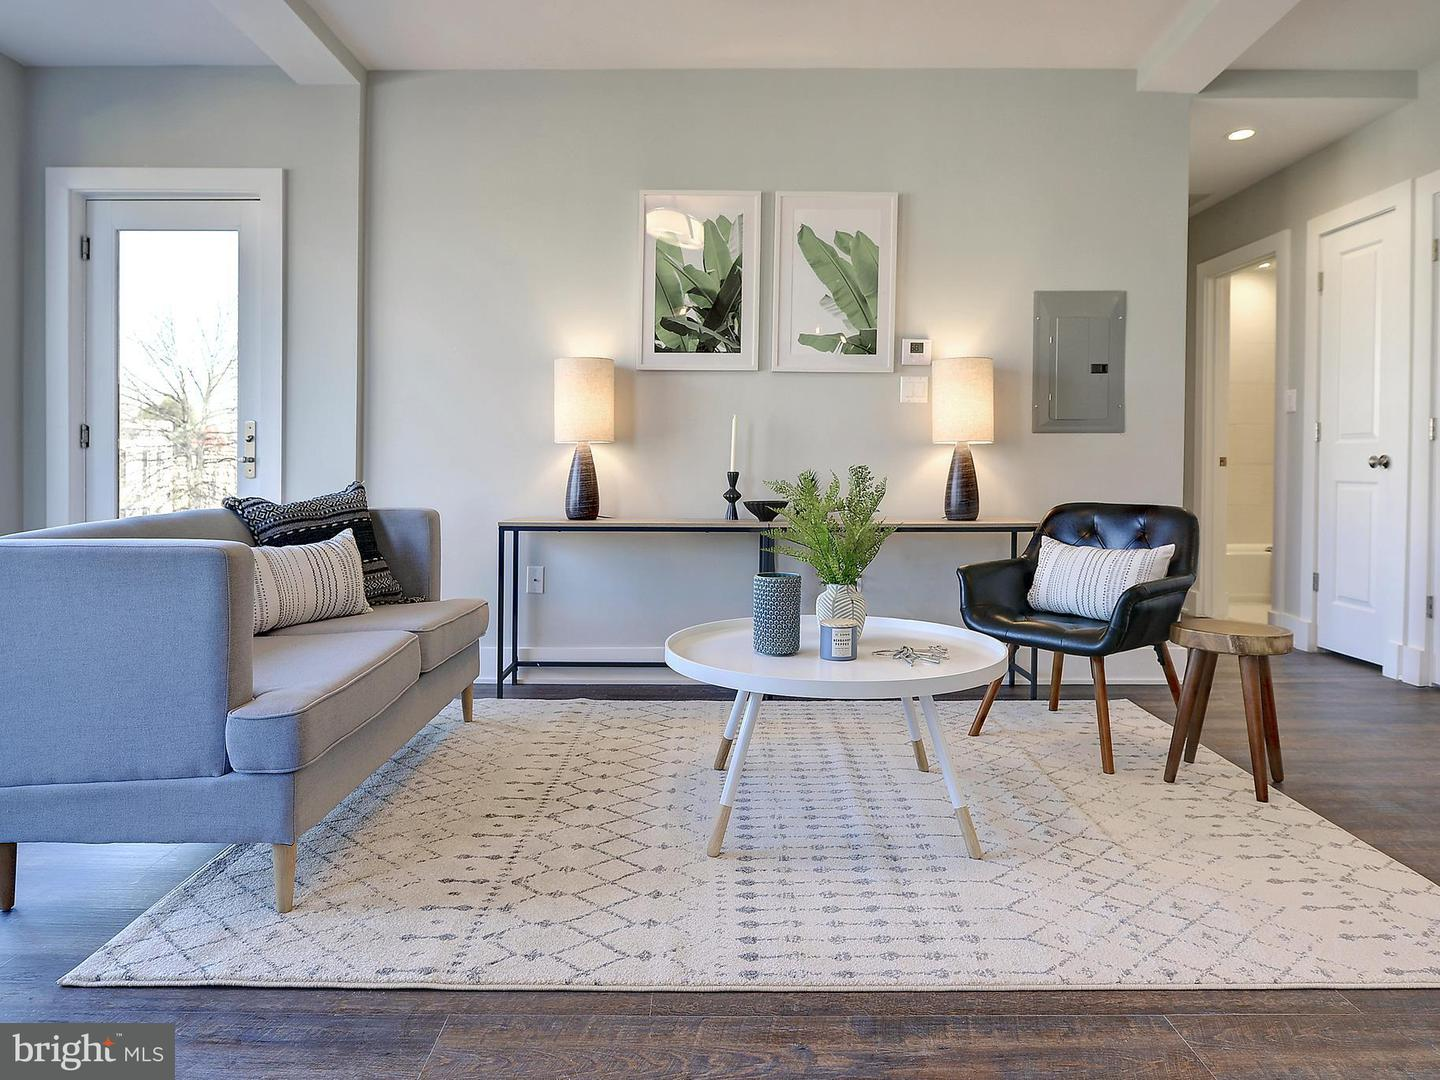 Other Residential for Rent at 1219 K St NE #302 Washington, District Of Columbia 20002 United States